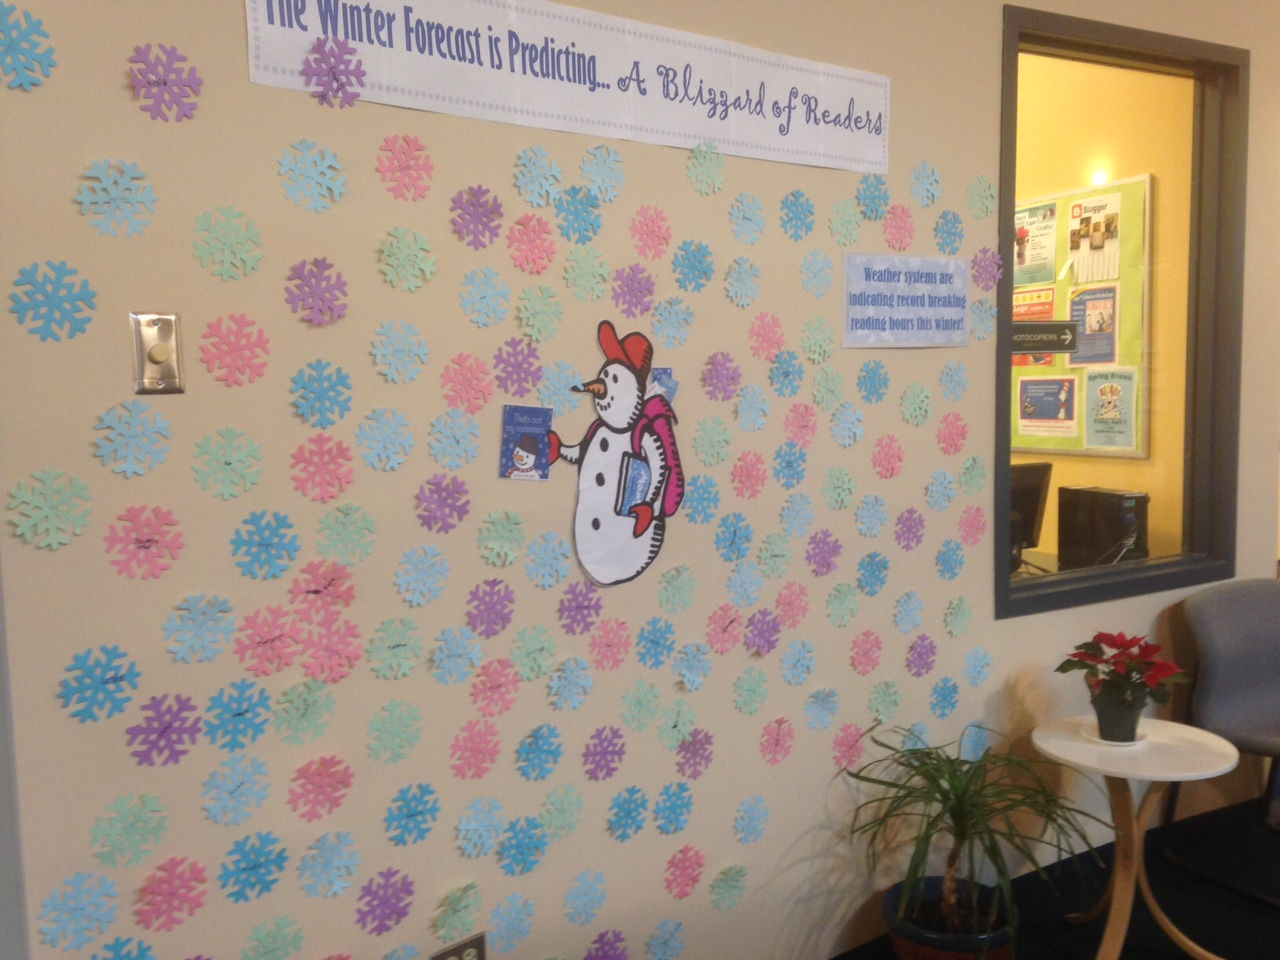 obpl youth services blog winter reading program grand